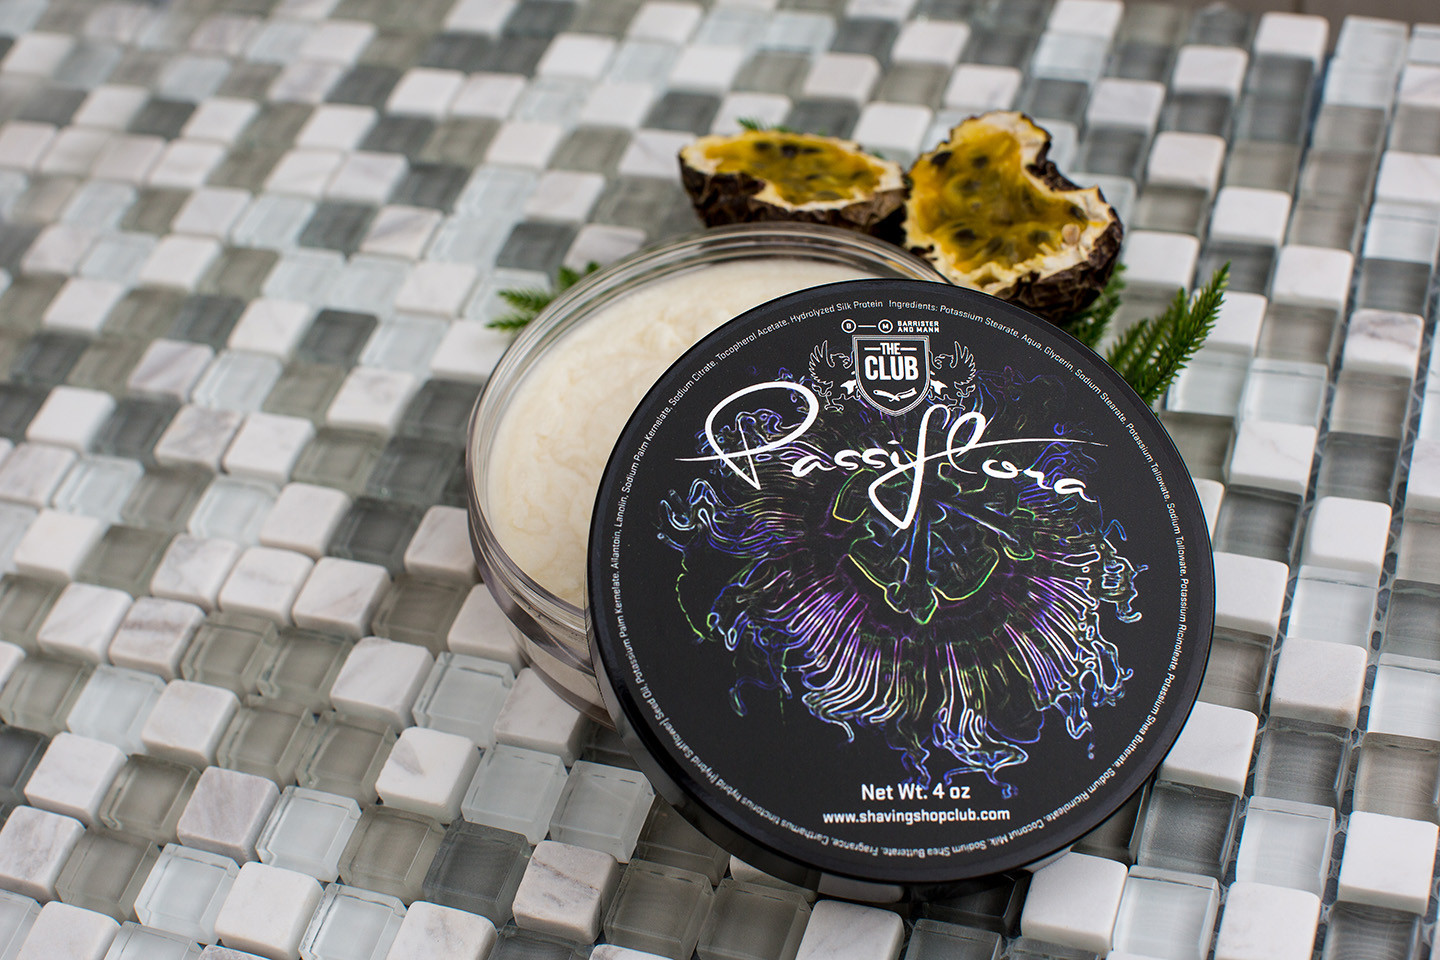 Barrister and Mann - Passiflora - Soap image